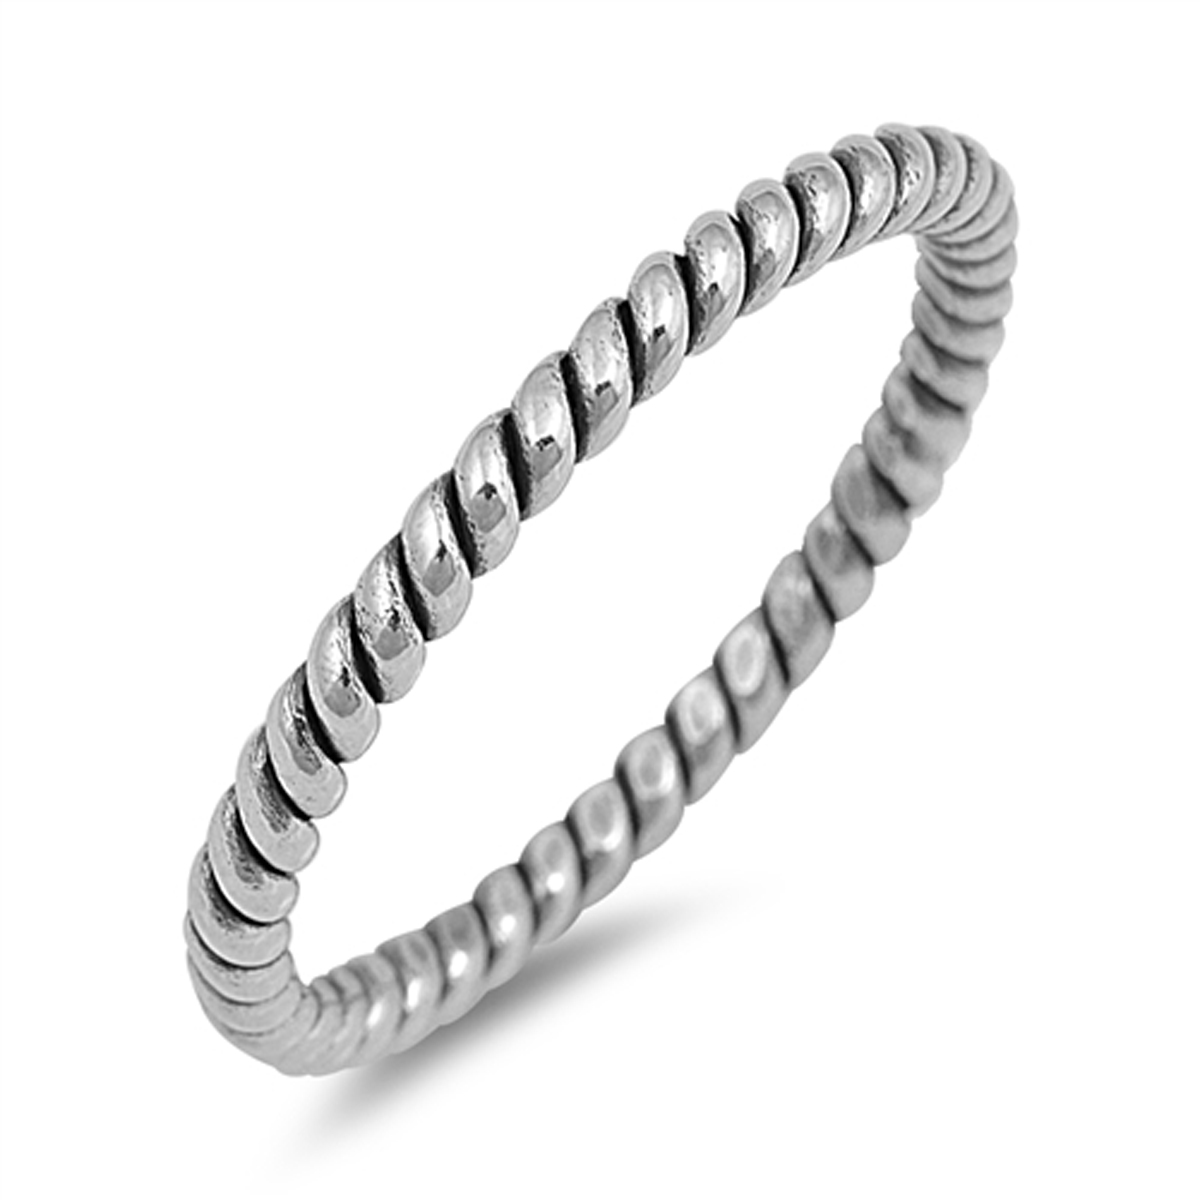 Sterling Silver Women's Wedding Oxidized Twist Thumb Ring (Sizes 2-12) (Ring Size 6)